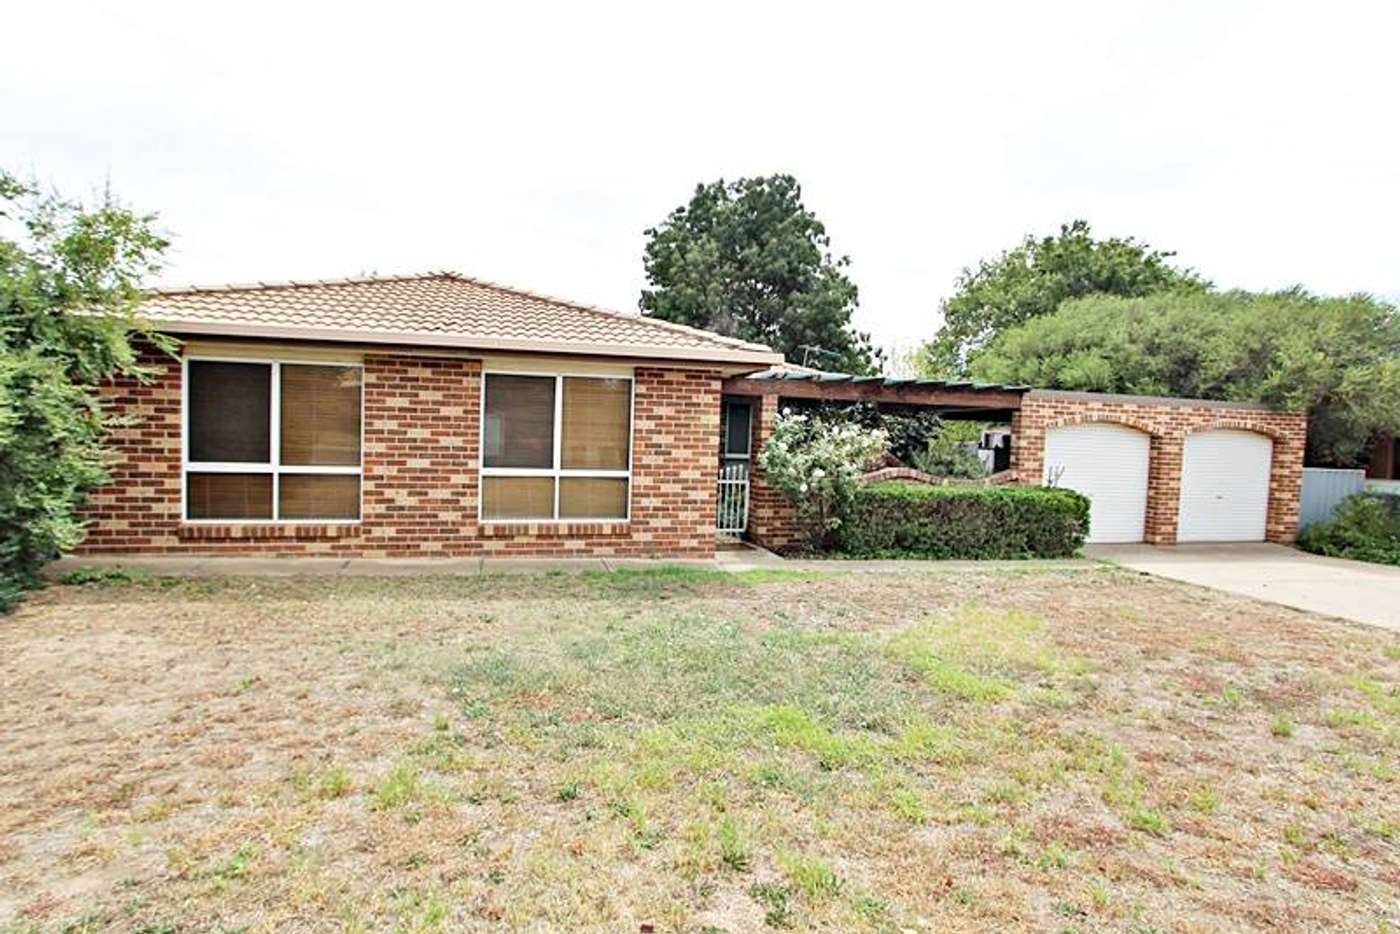 Main view of Homely house listing, 28 Langi Crescent, Glenfield Park NSW 2650